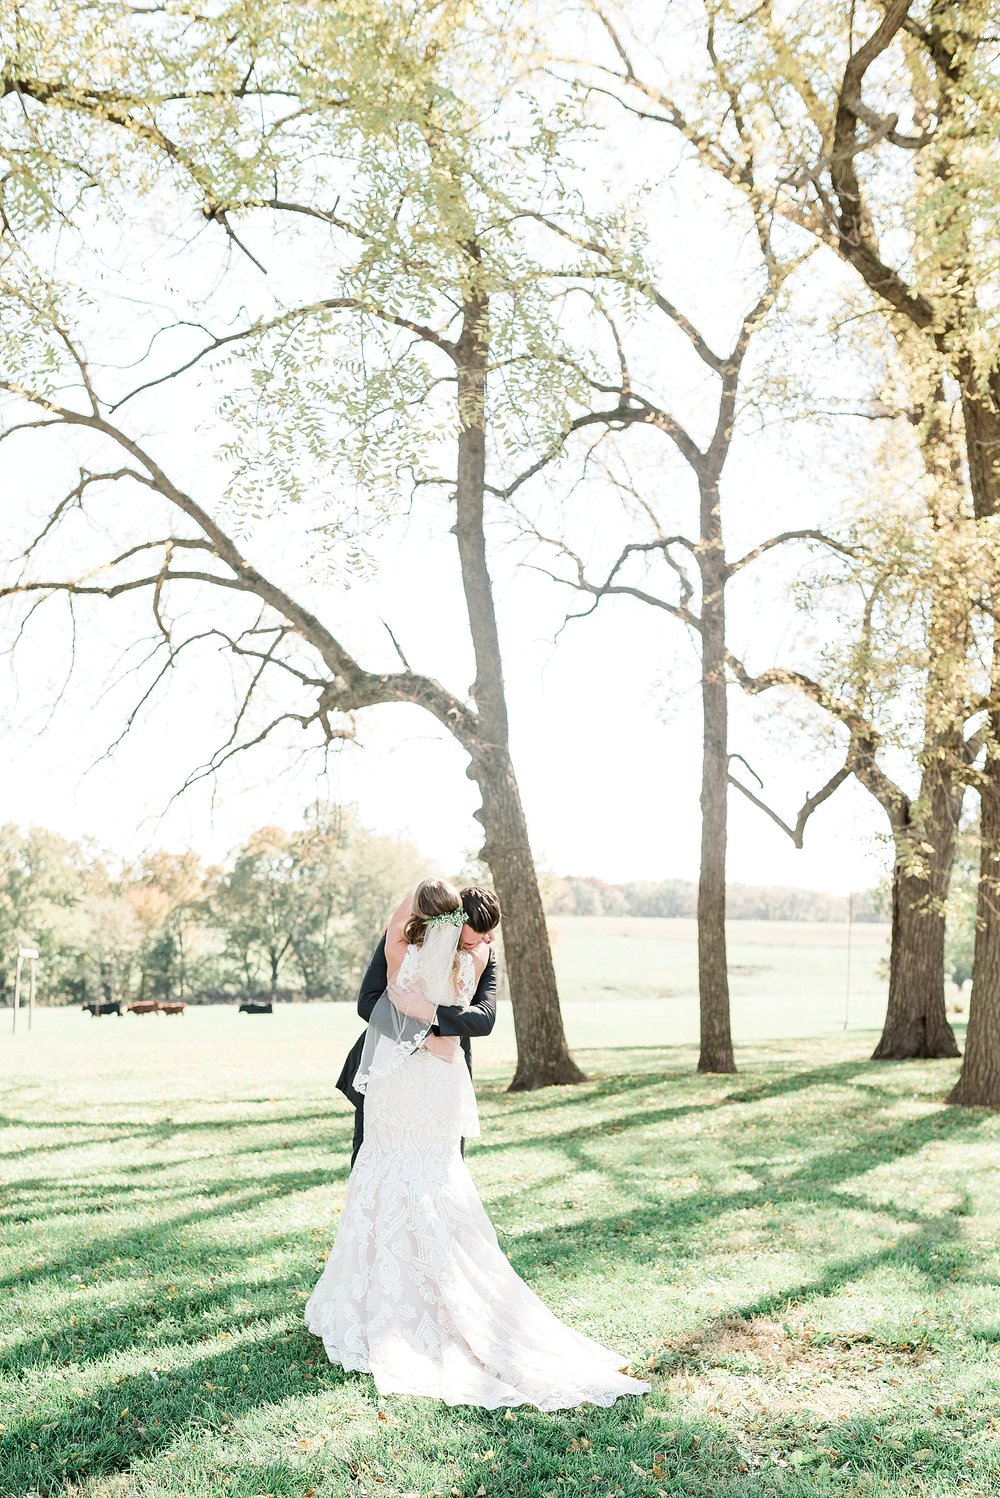 Golden Autumn Outdoor Wedding with Ivory, Bergundy, and Blush Color Palette at Blue Bell Farms  by Kelsi Kliethermes Photography_0065.jpg